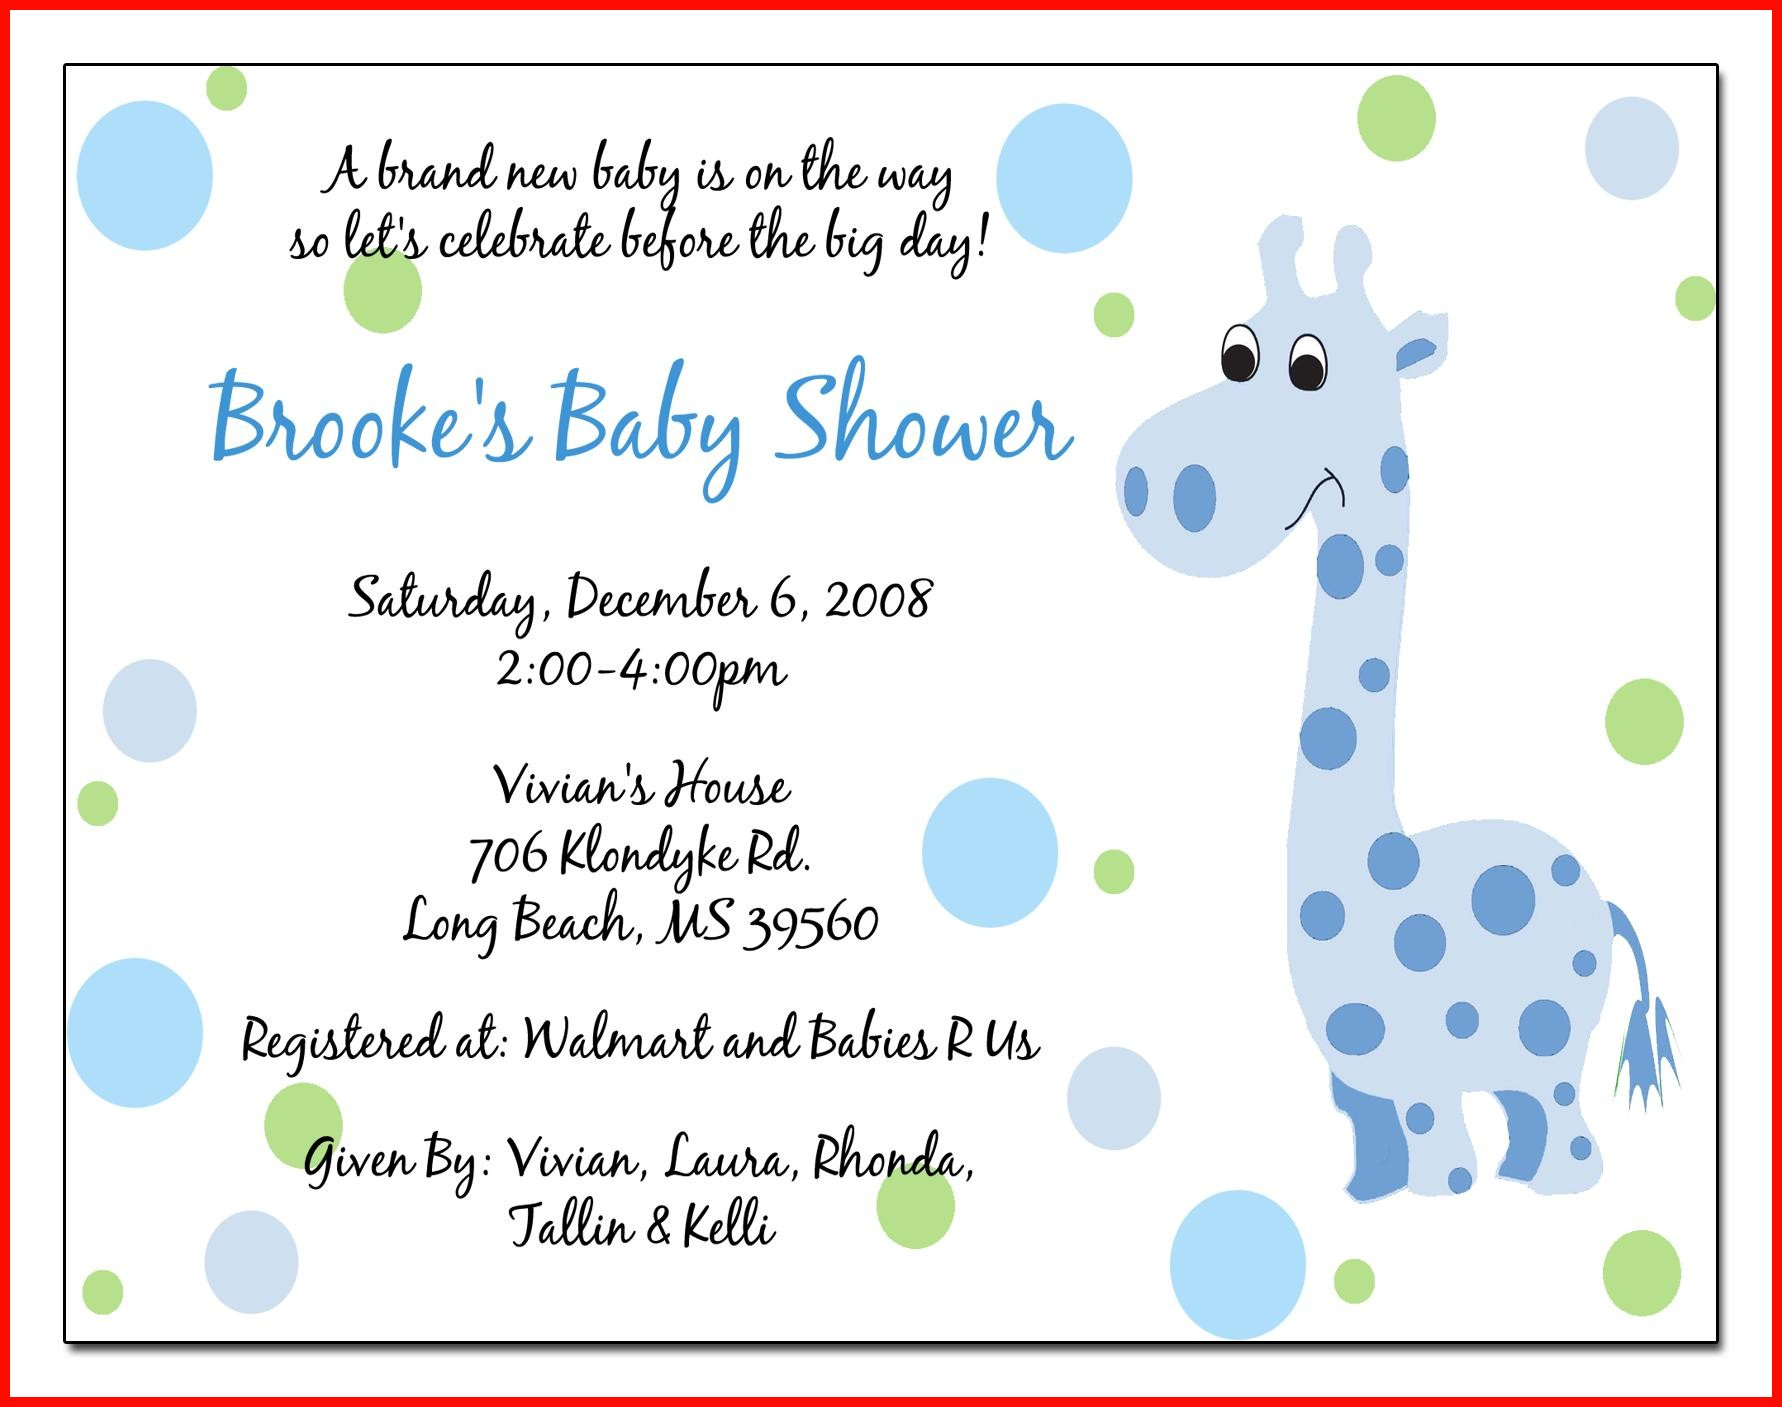 Free Baby Shower Invitation Templates For Word 40321 Baby Shower Invite Samples Mughals